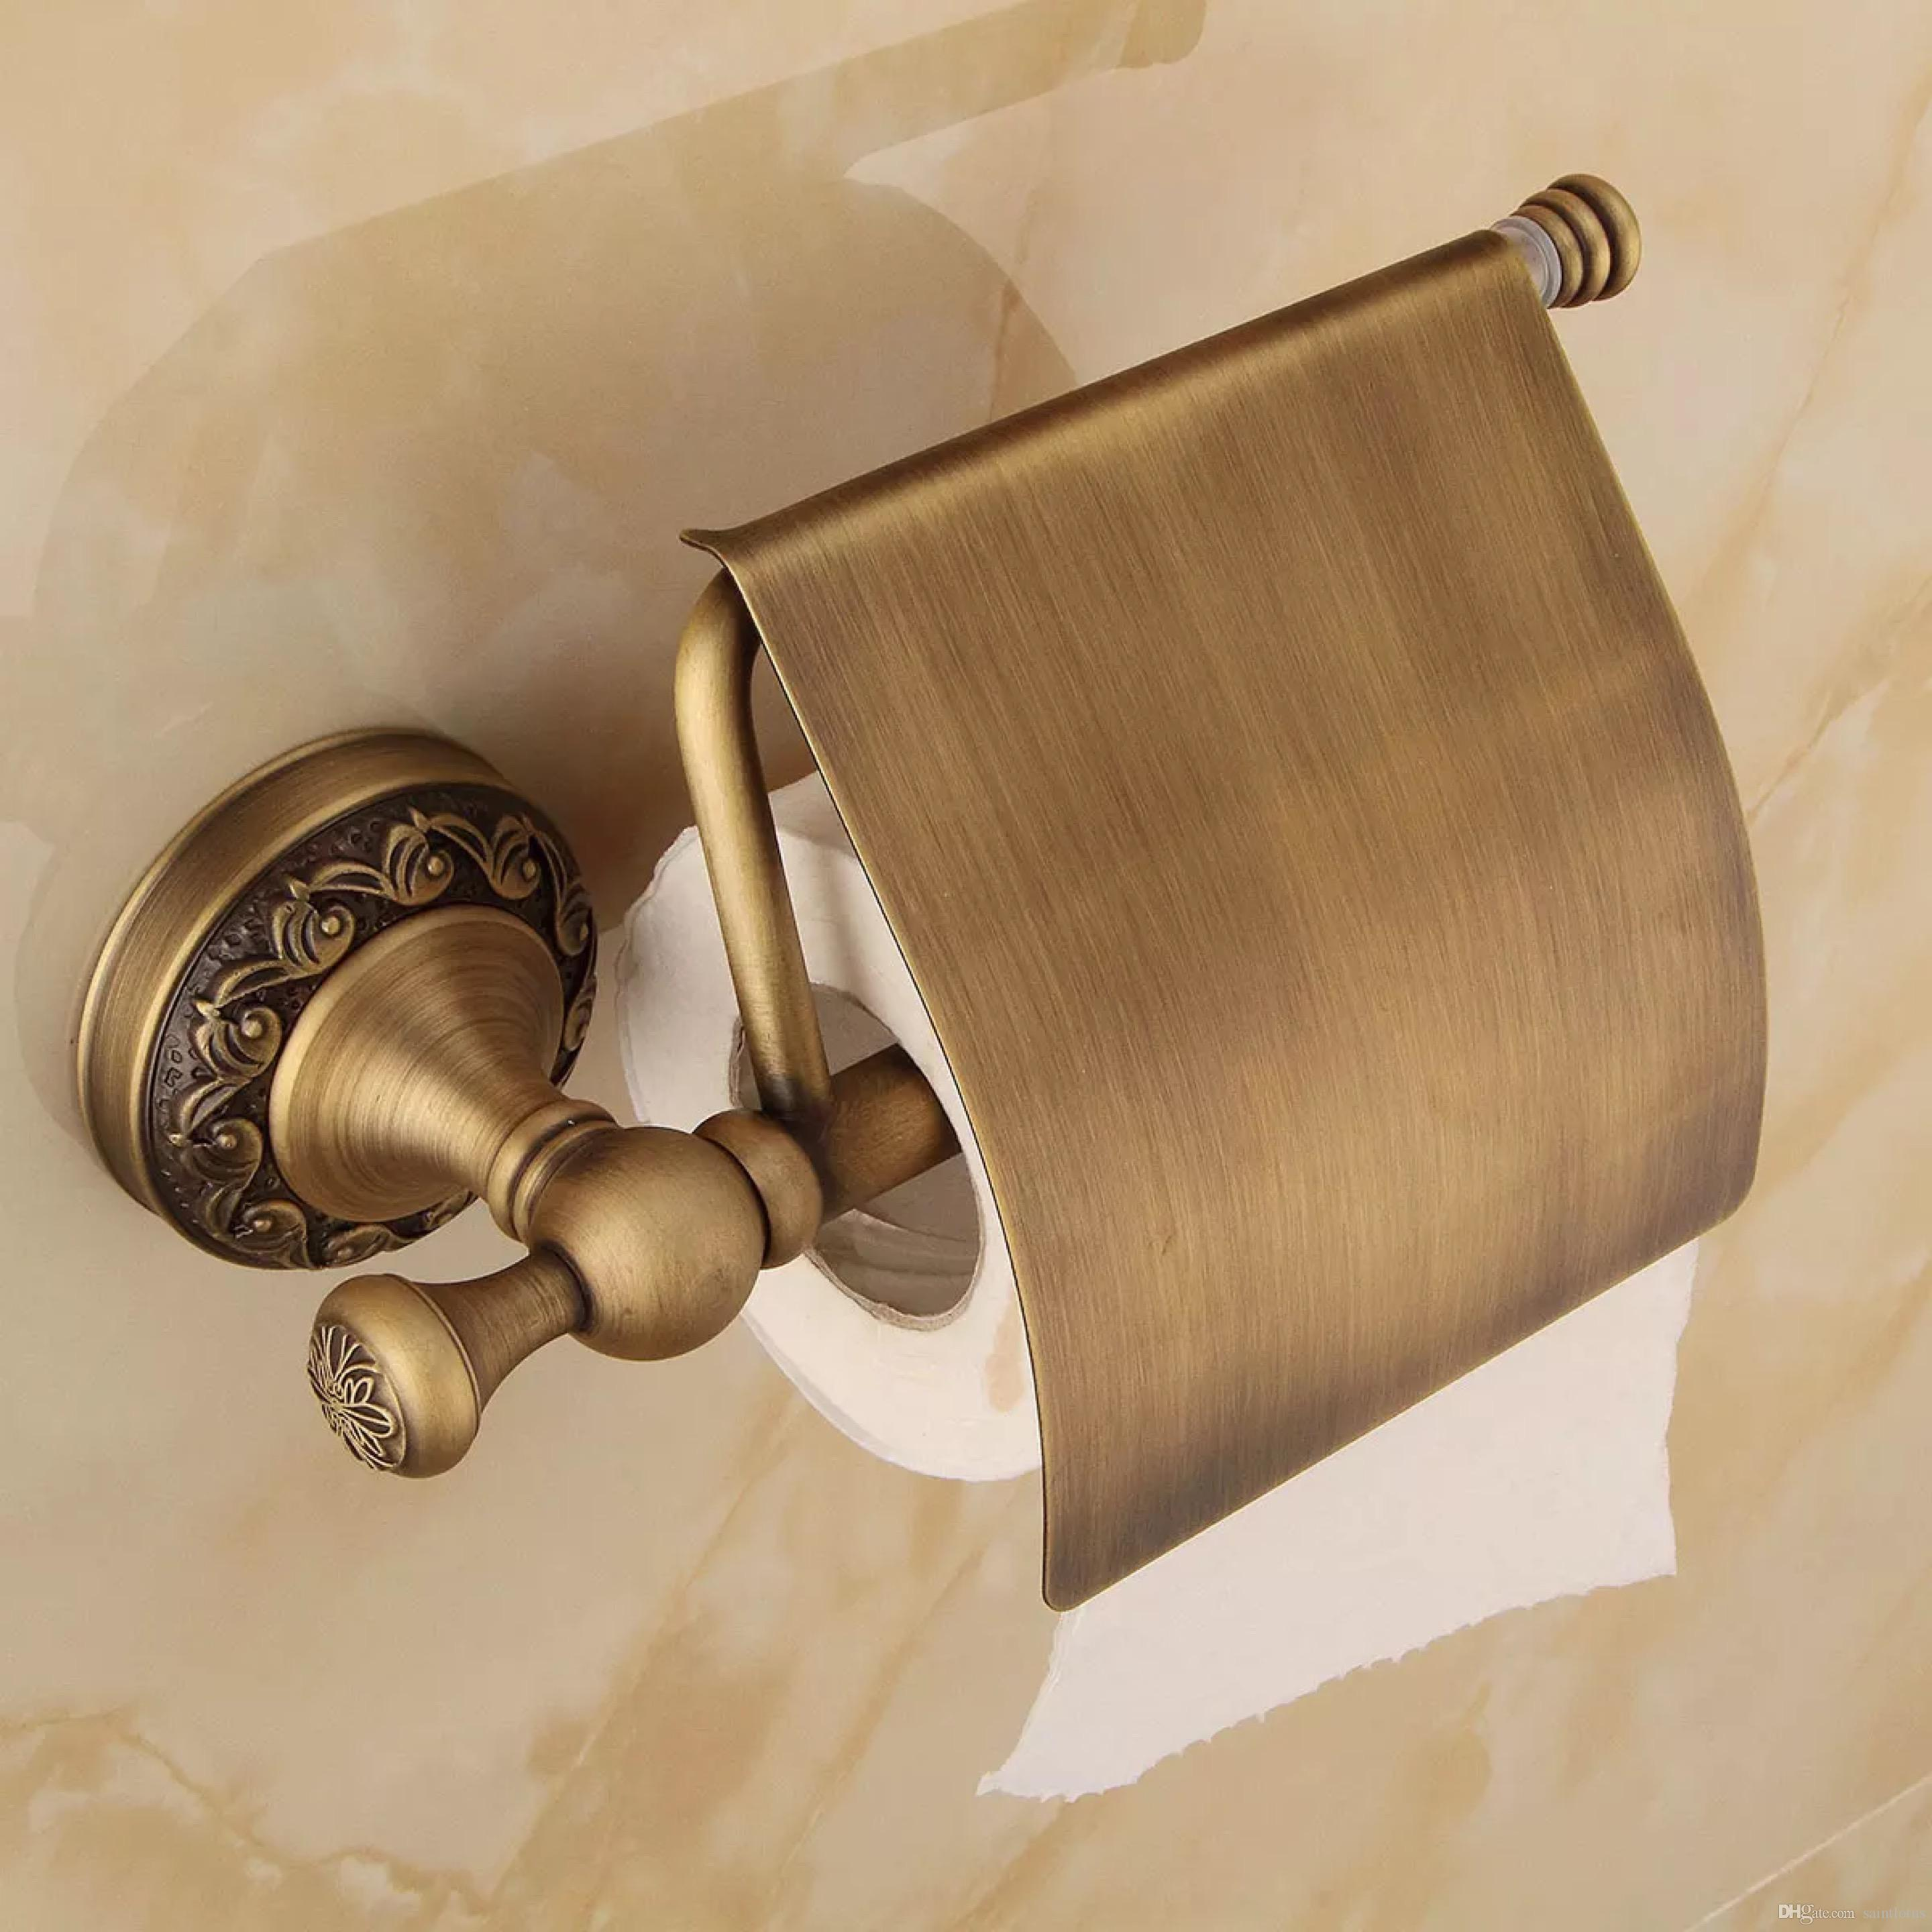 2019 antique brass paper towel rack europe style bathroom paper rh dhgate com